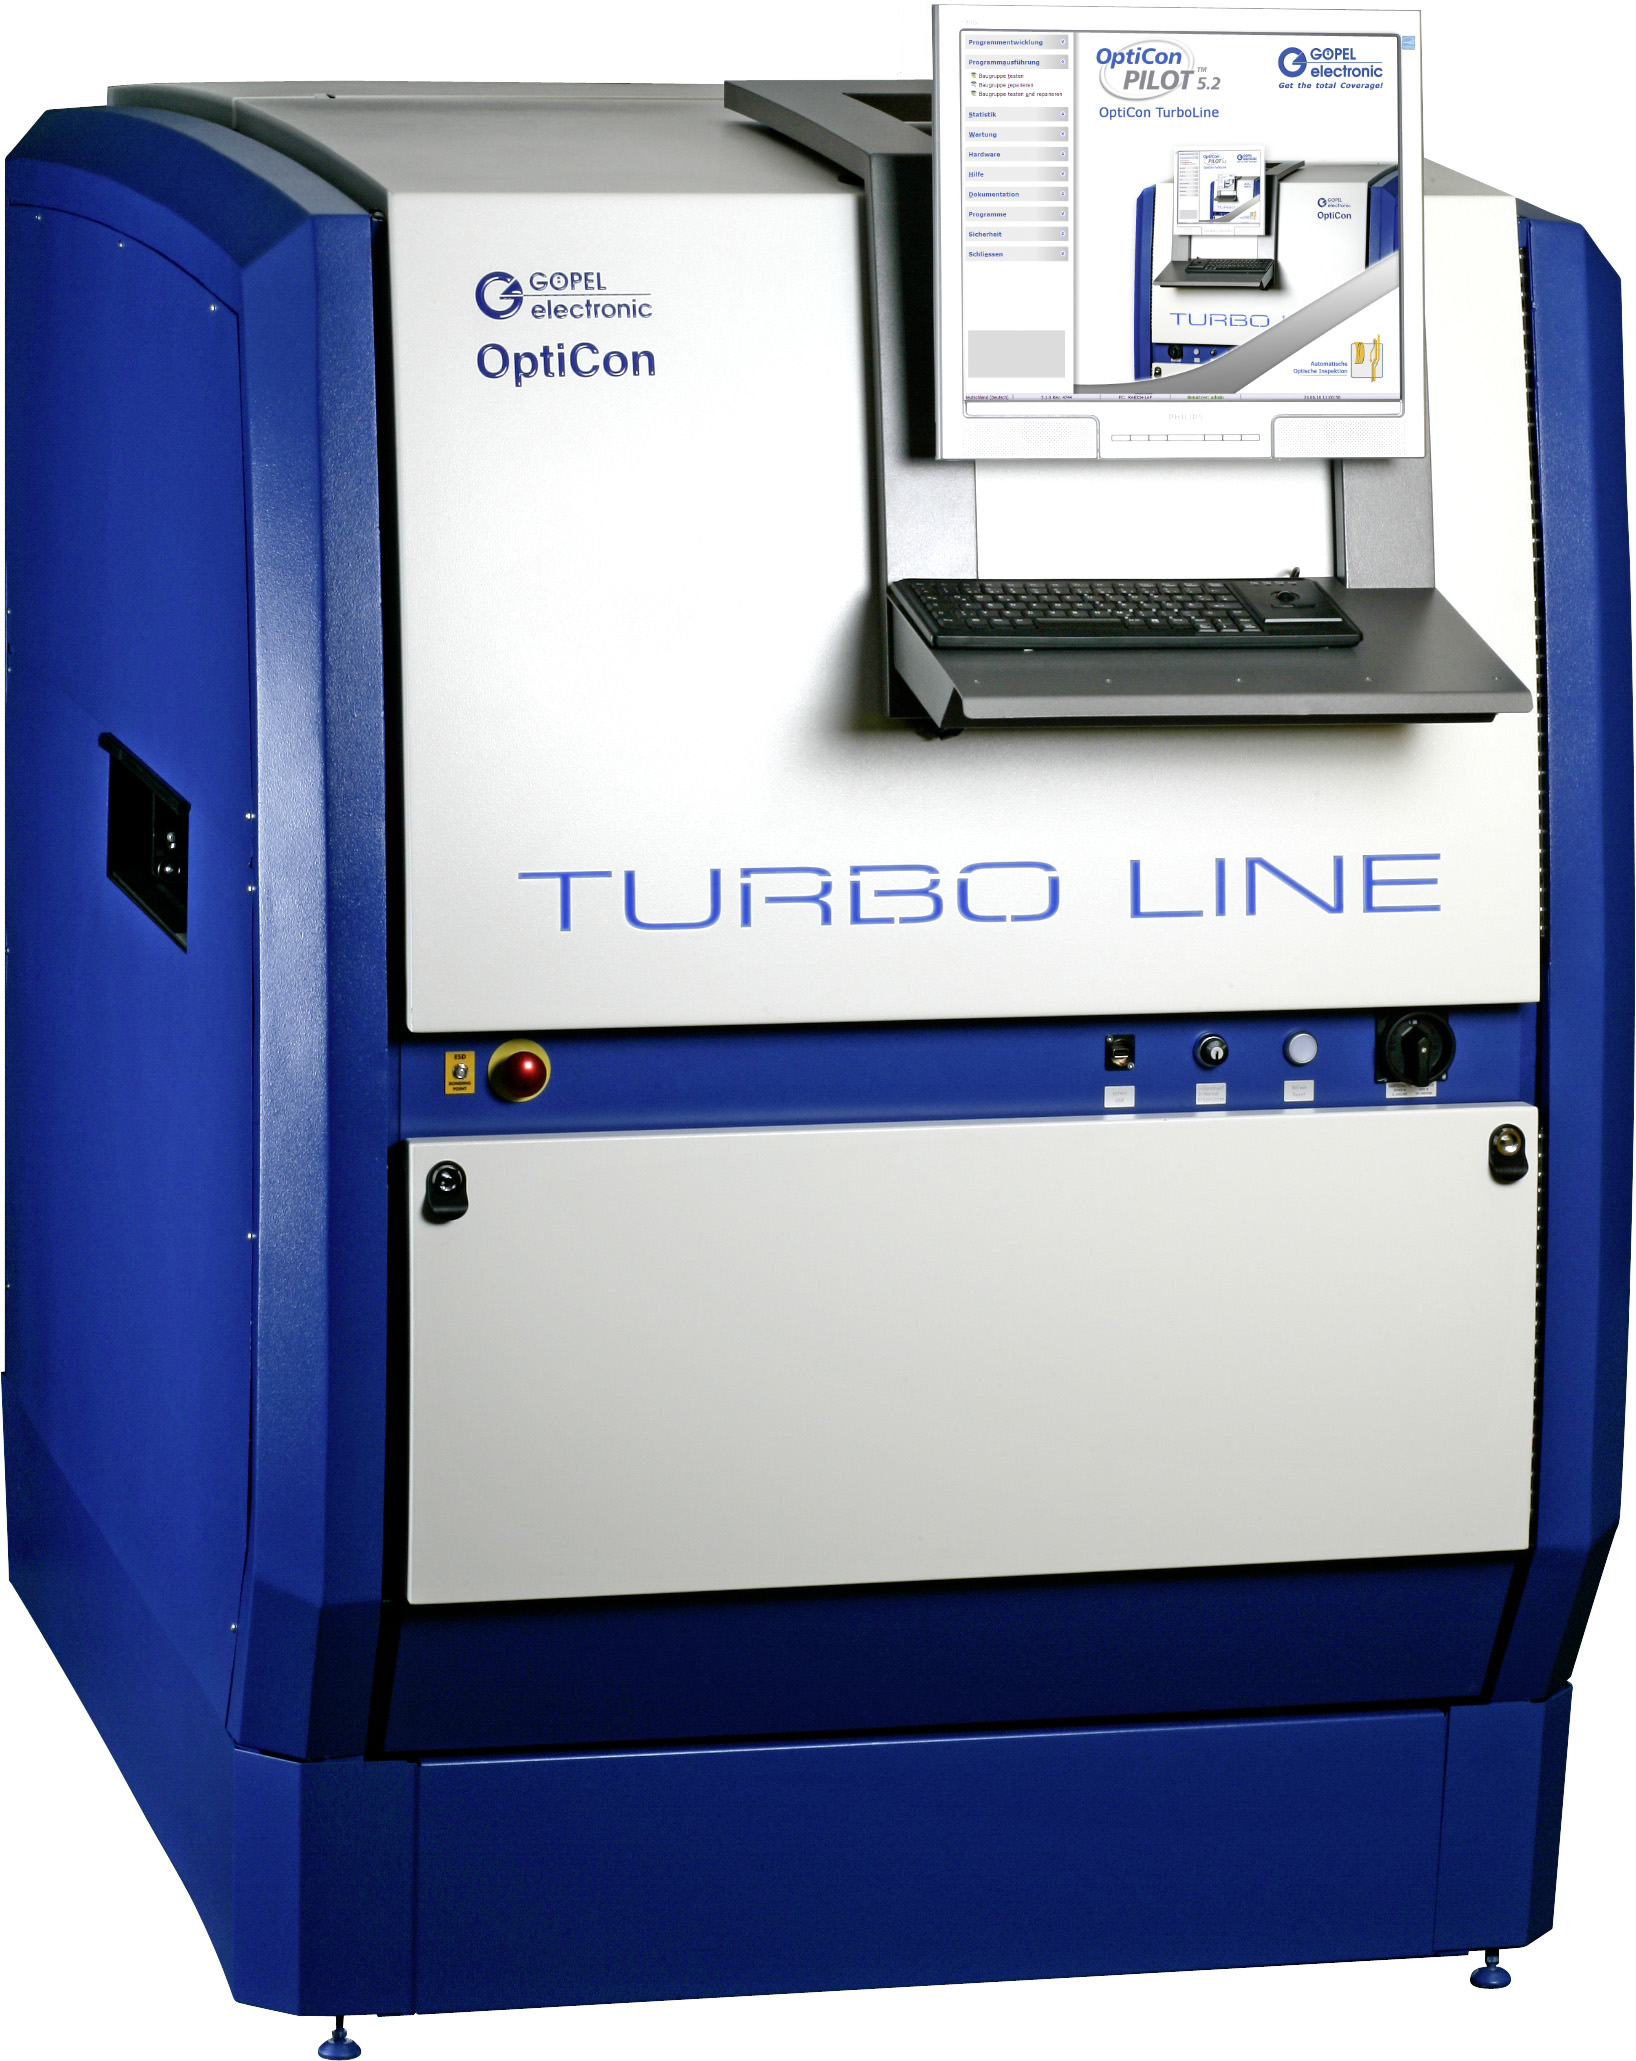 AOI System with Turbo – GOEPEL electronic doubles Inspection Speed